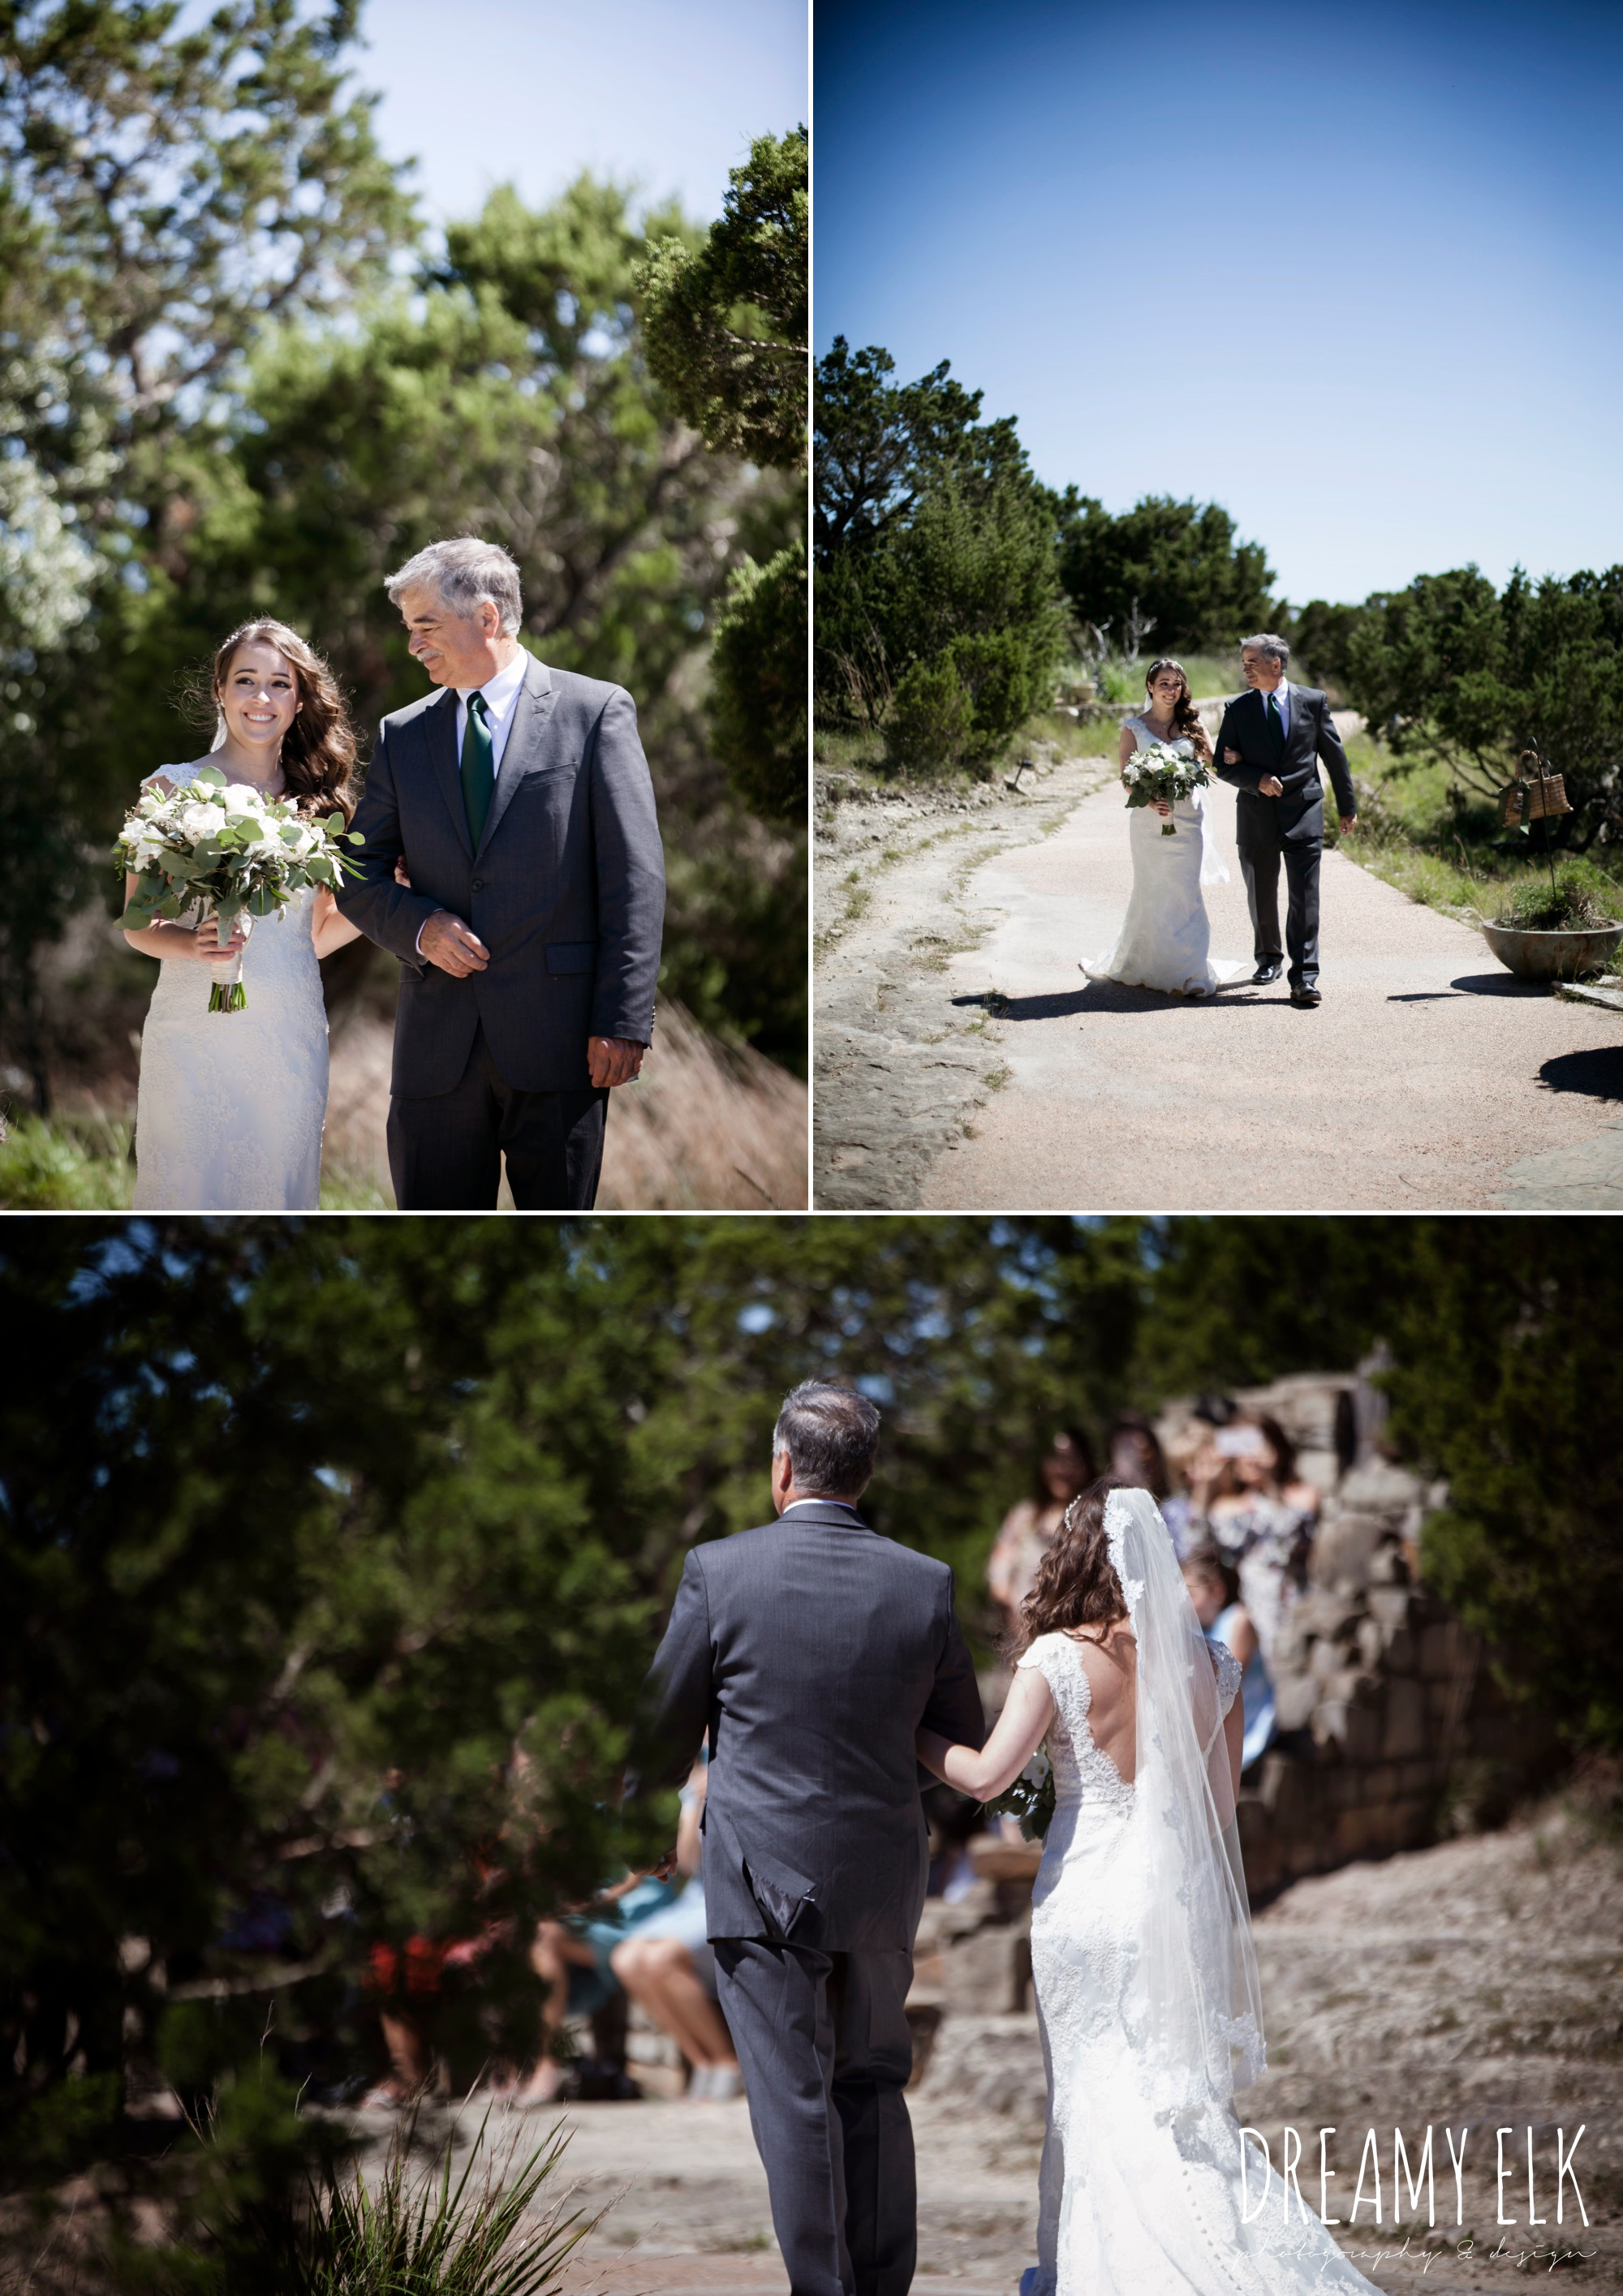 bride and dad walking down the aisle, outdoor spring april wedding photo, chapel dulcinea ceremony, thurman's mansion, dripping springs, texas {dreamy elk photography and design}